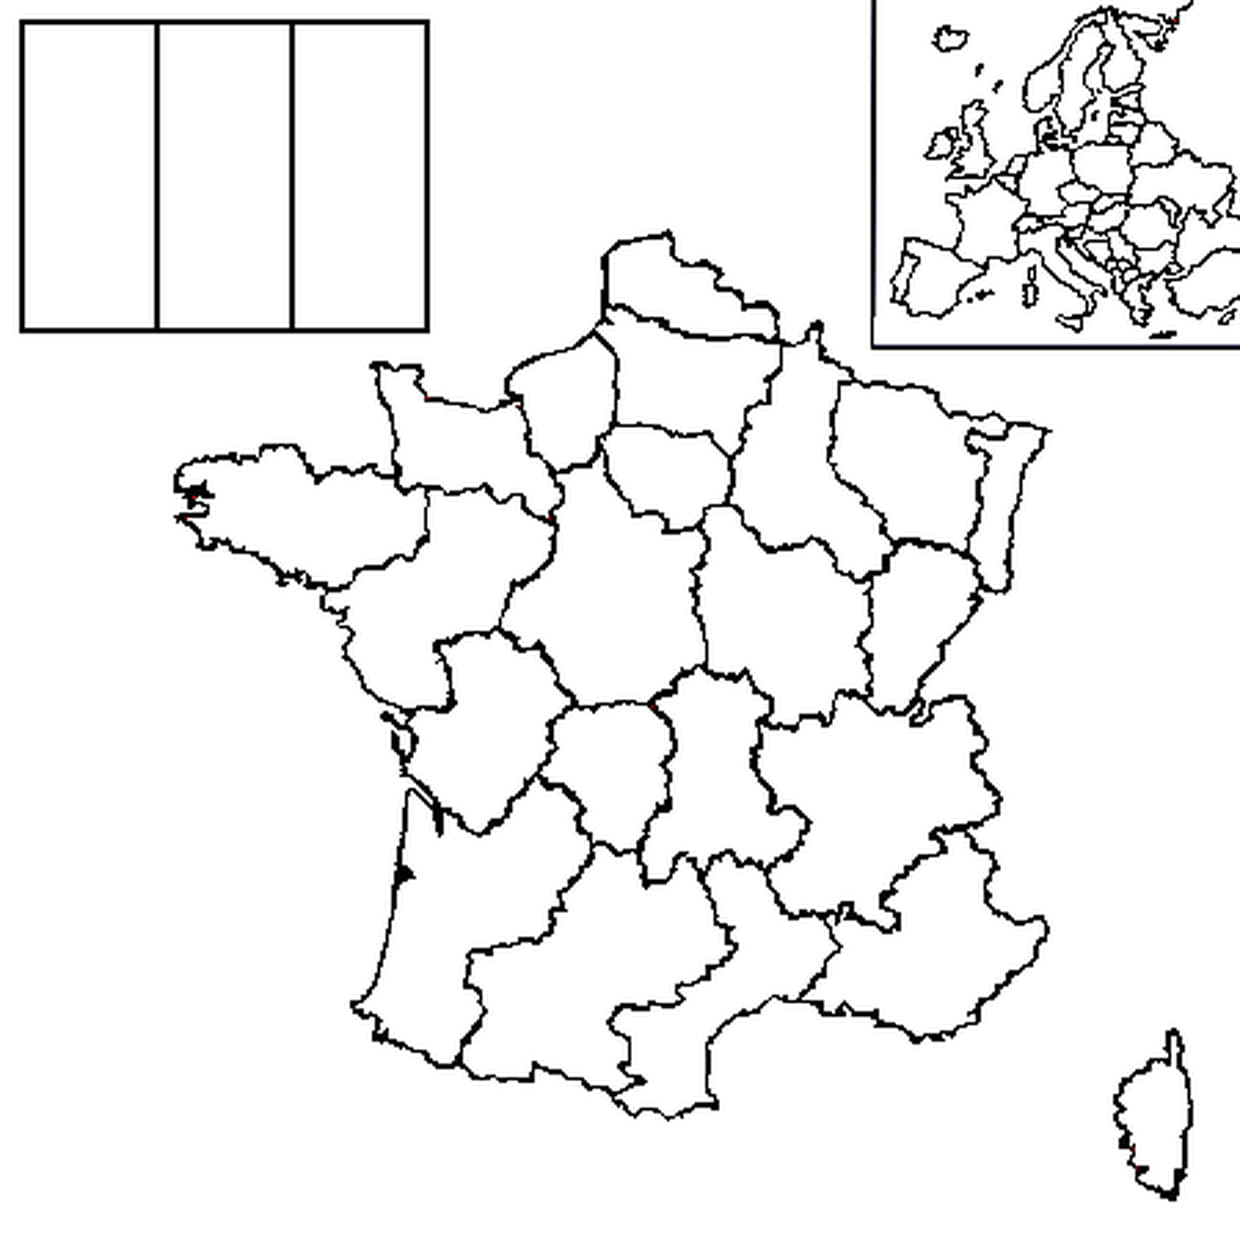 Coloriage Carte France En Ligne Gratuit À Imprimer destiné Coloriage Carte De France